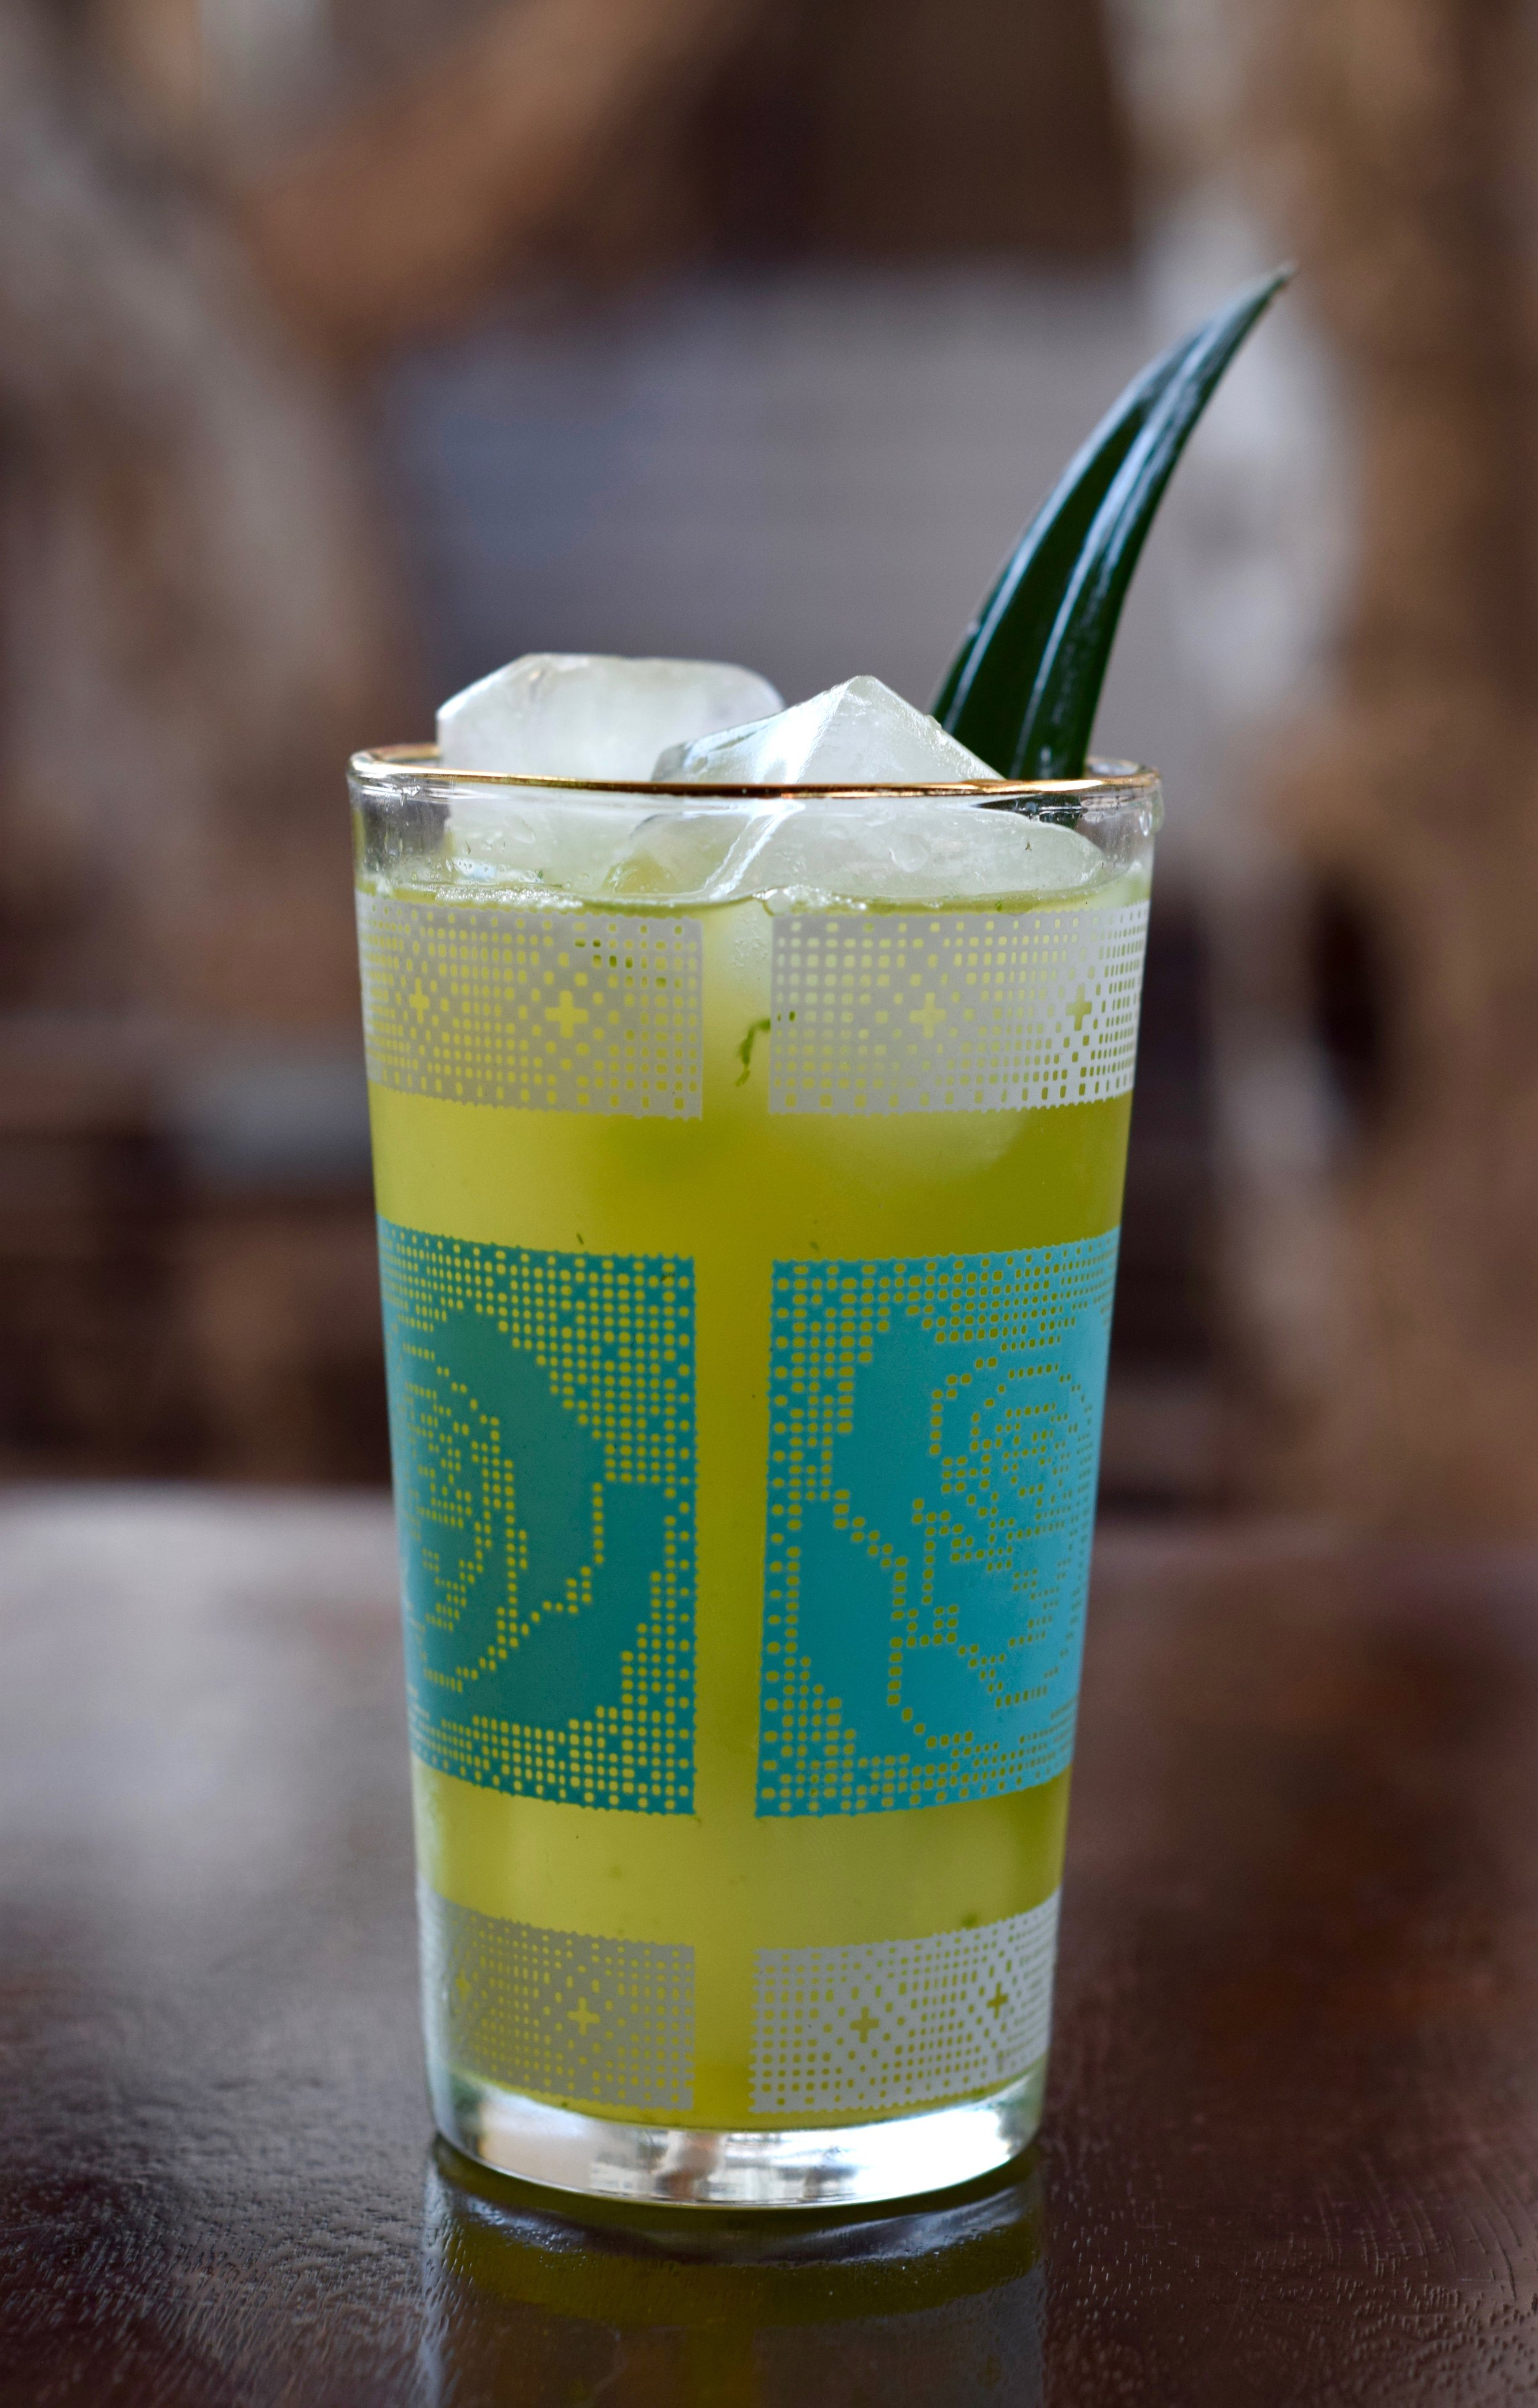 AZTEC GARDEN - 1 oz nostrum pineapple turmeric ginger shrub3/4 oz fresh lime juice5-6 leaves fresh epazote (or mint)6 oz soda waterdirections: shake first three ingredients with ice.top with soda and strain over fresh ice.